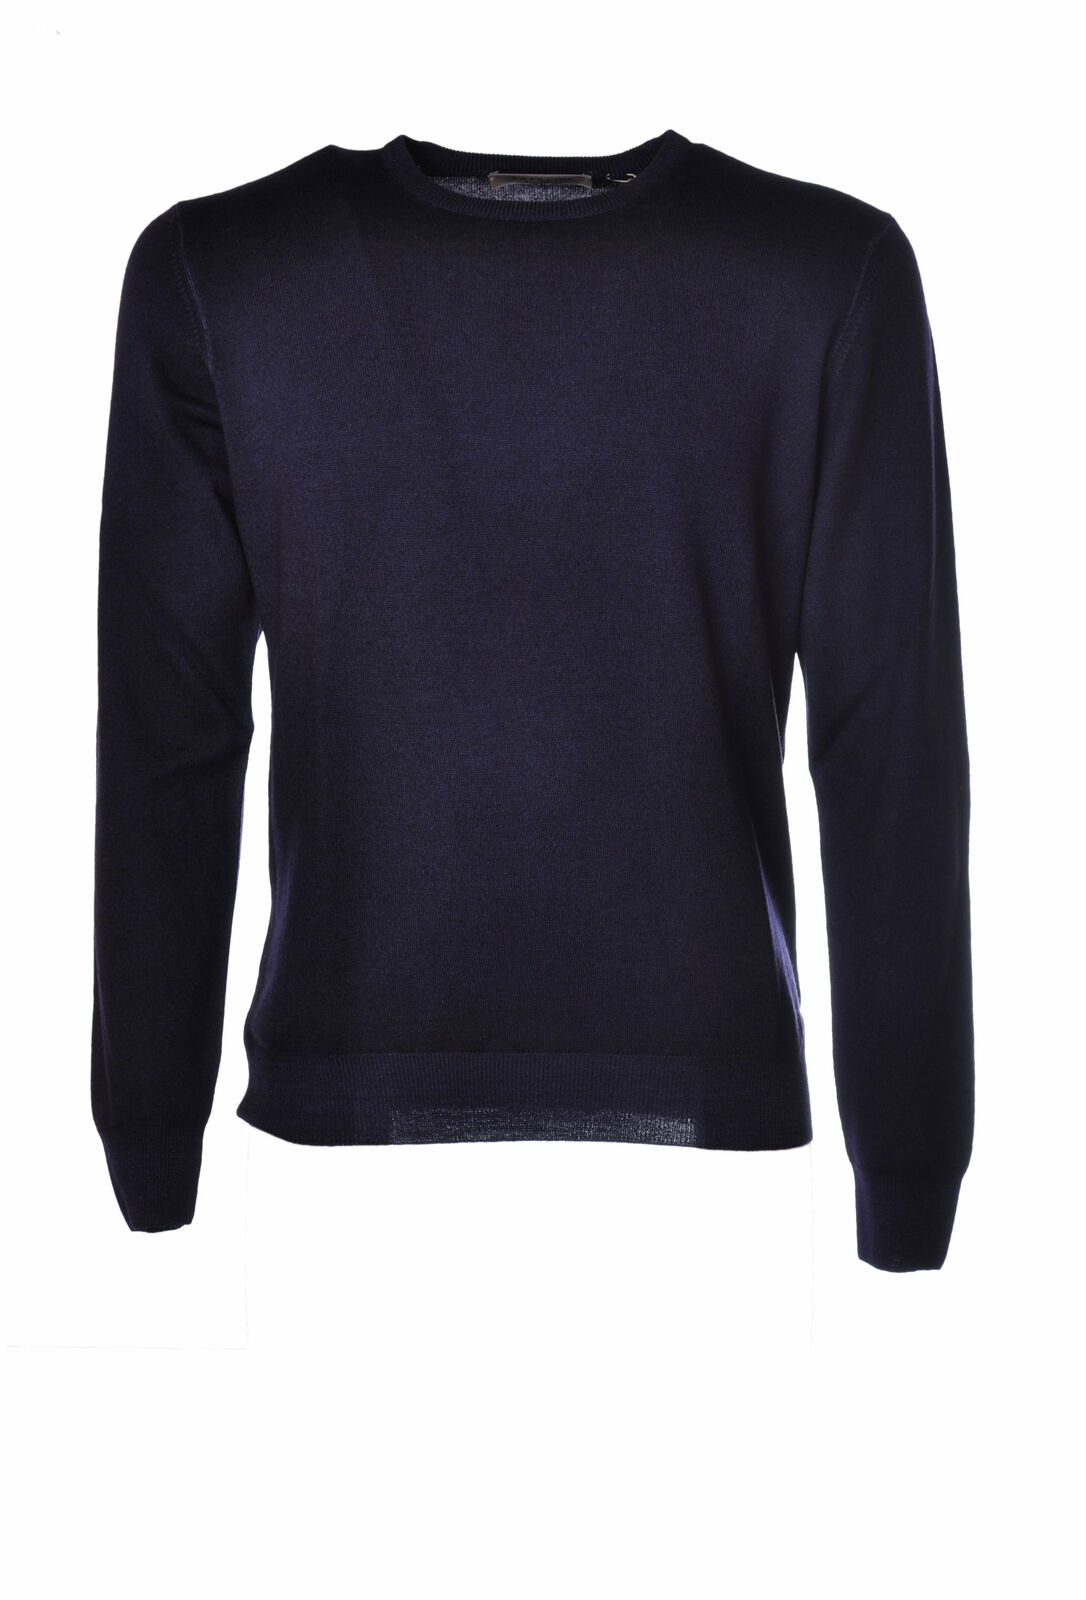 LA FILERIA  -  Sweaters - Male - Blau - 2616029N173654